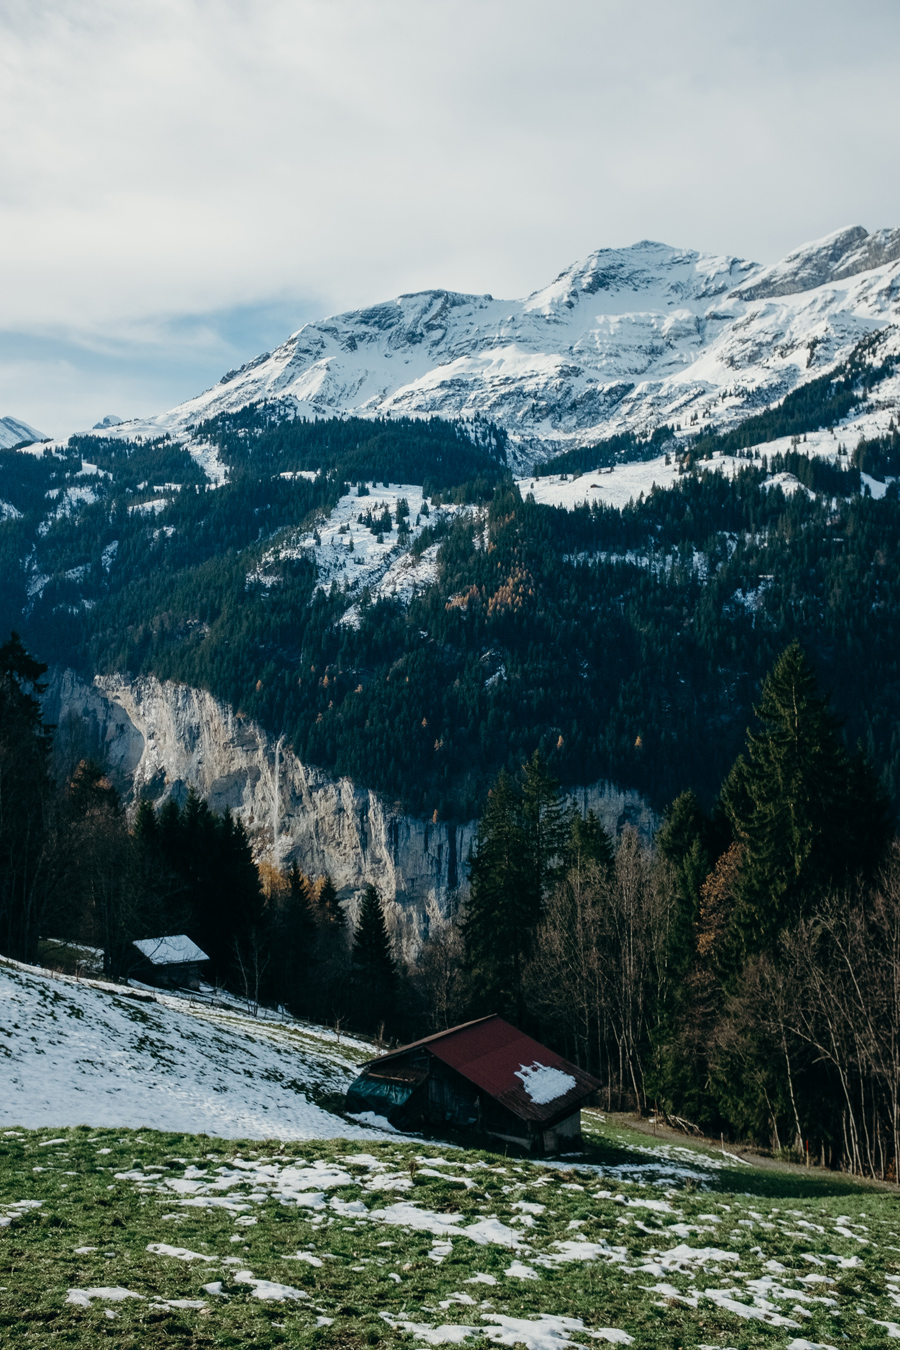 039-switzerland-mountains-snow-travel-photography.jpg